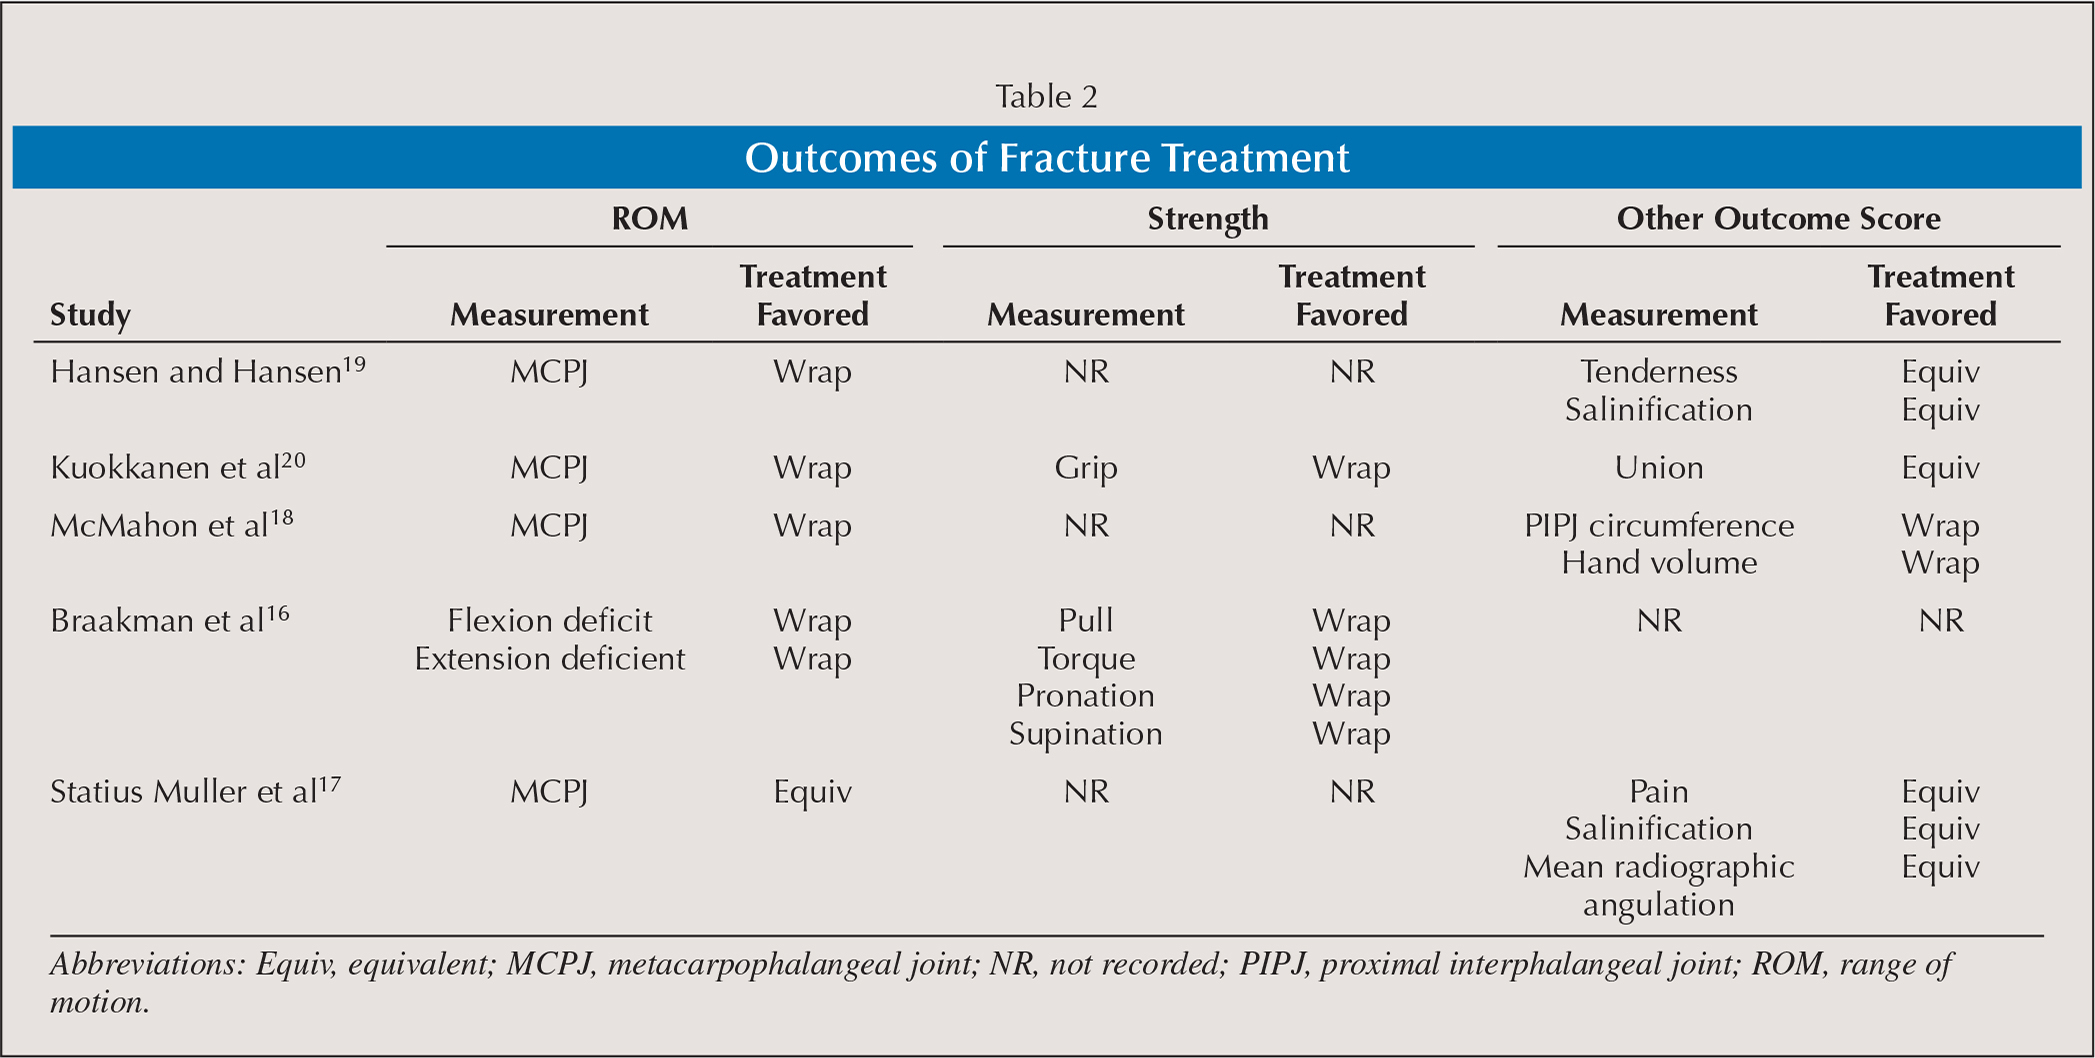 Outcomes of Fracture Treatment